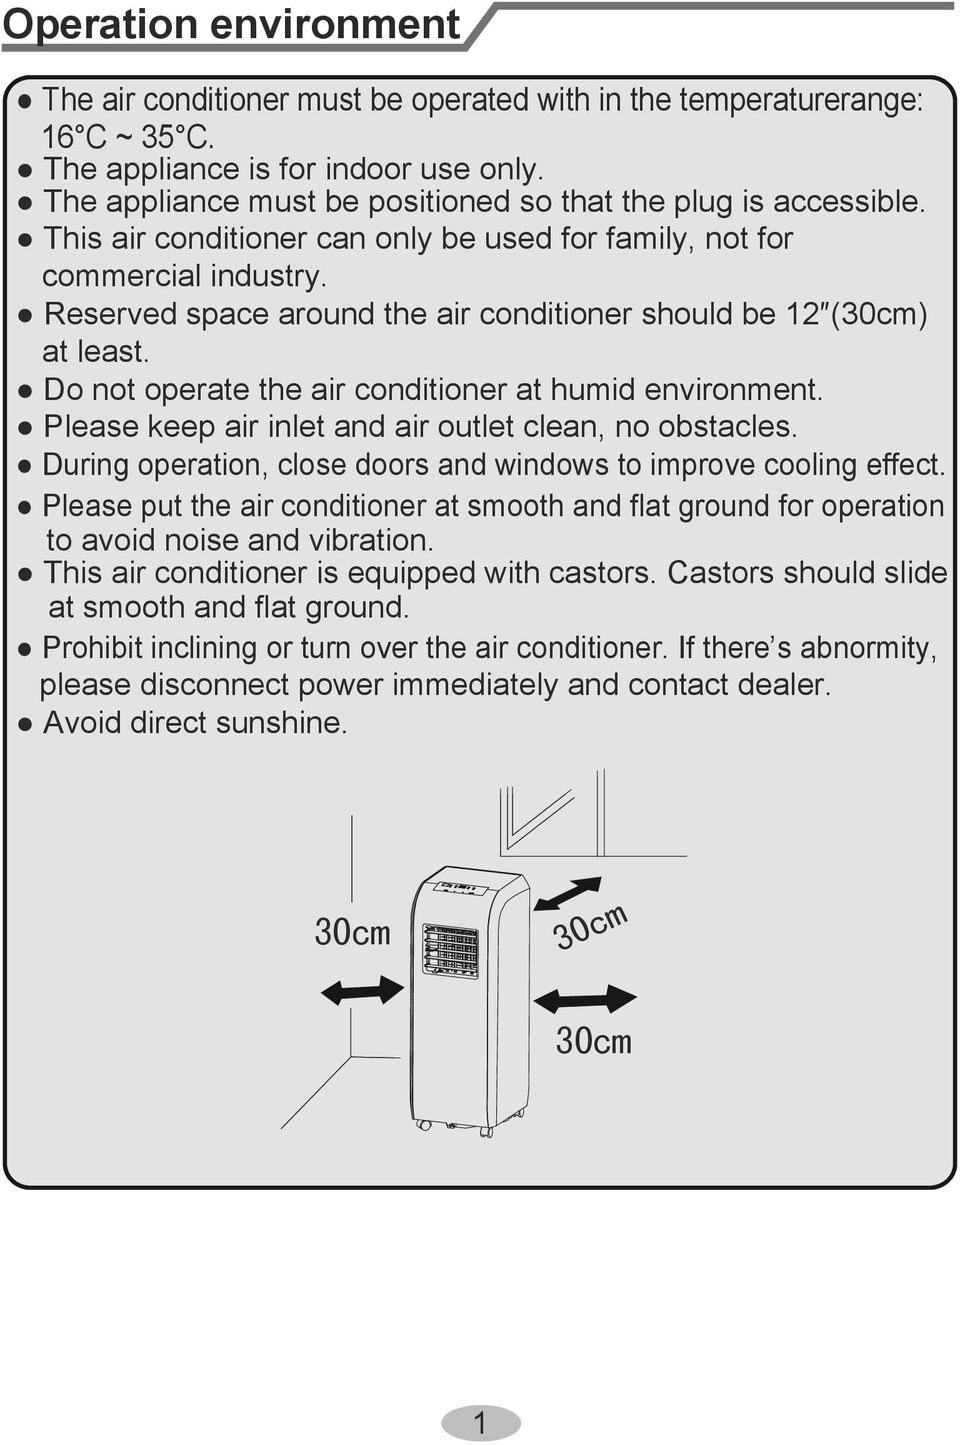 Reserved space around the air conditioner should be 12 (30cm) at least. Do not operate the air conditioner at humid environment. Please keep air inlet and air outlet clean, no obstacles.